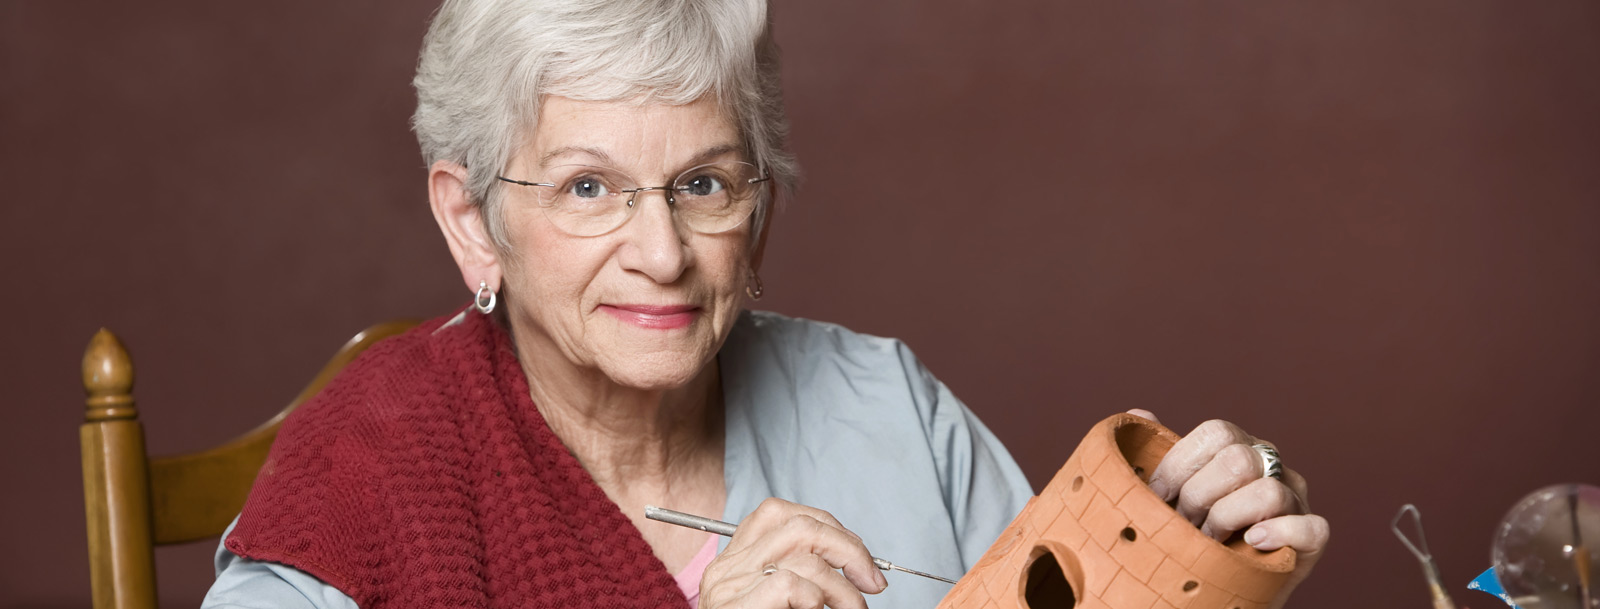 Art is ageless programs at the senior facility